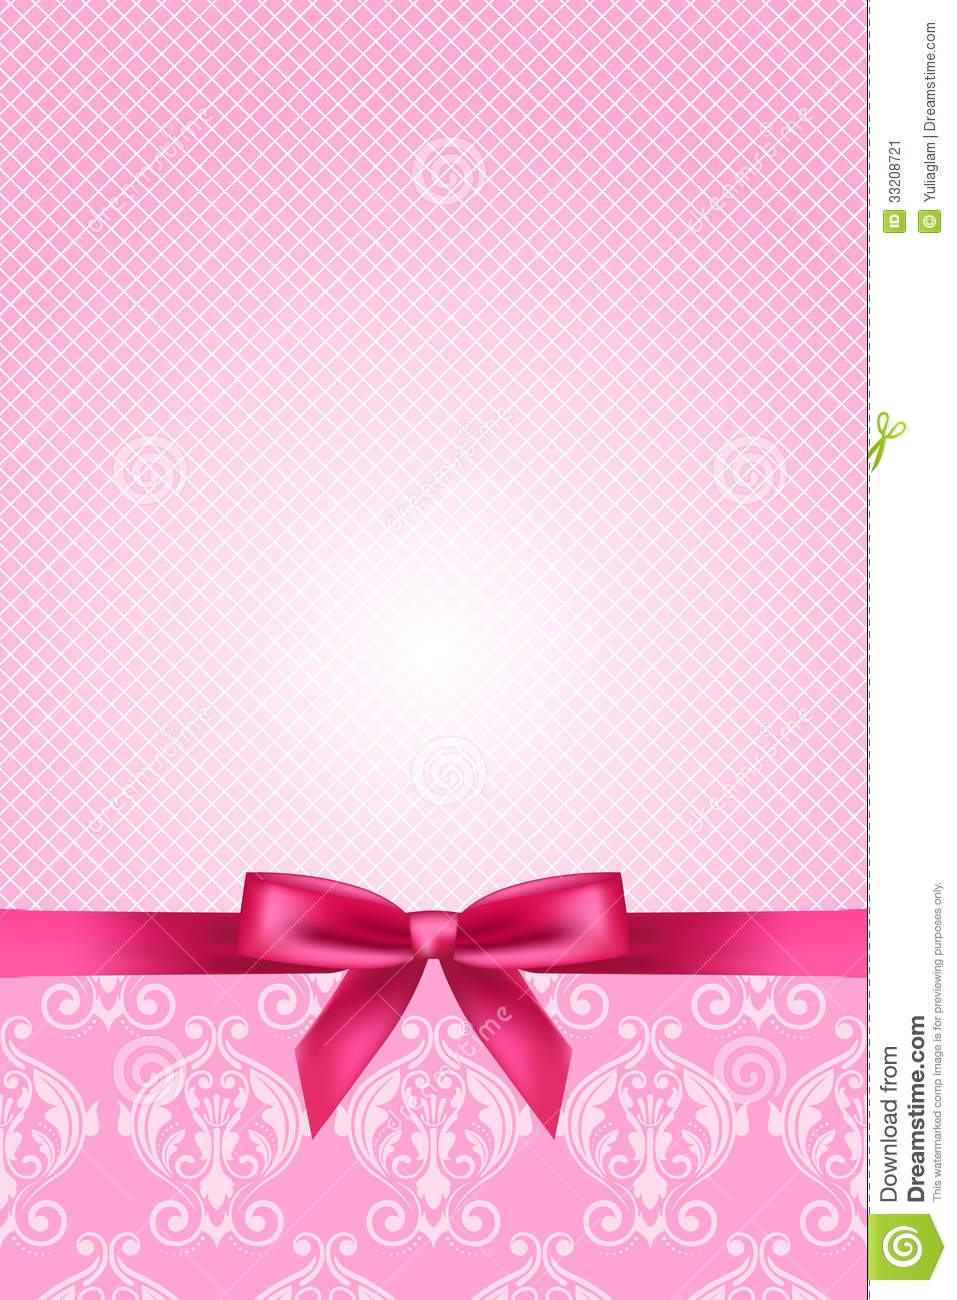 Little Princess Girl Wallpaper Pink Wallpaper With Bow Stock Vector Illustration Of Card